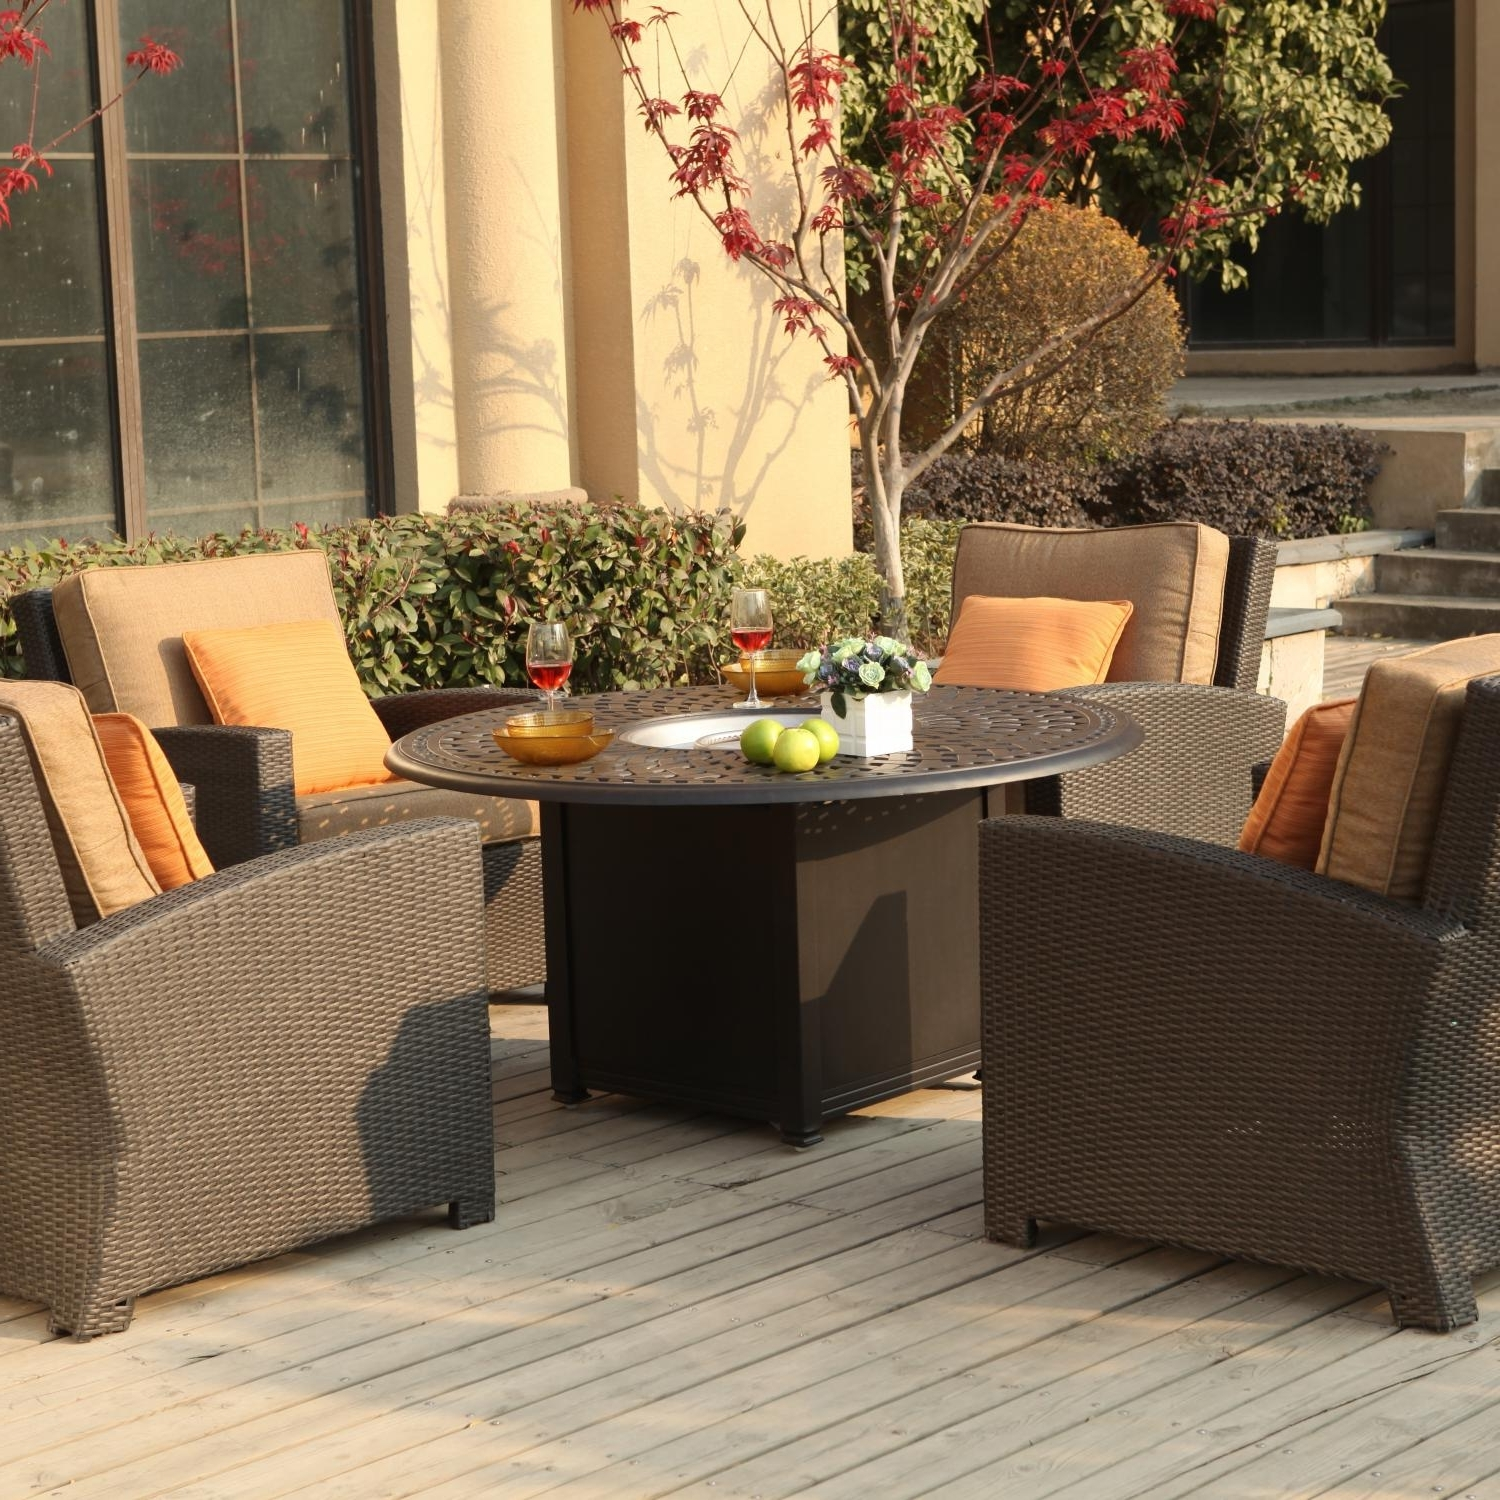 Patio Conversation Sets With Propane Fire Pit With Regard To Current Darlee Vienna 5 Piece Resin Wicker Patio Fire Pit Set (View 10 of 15)